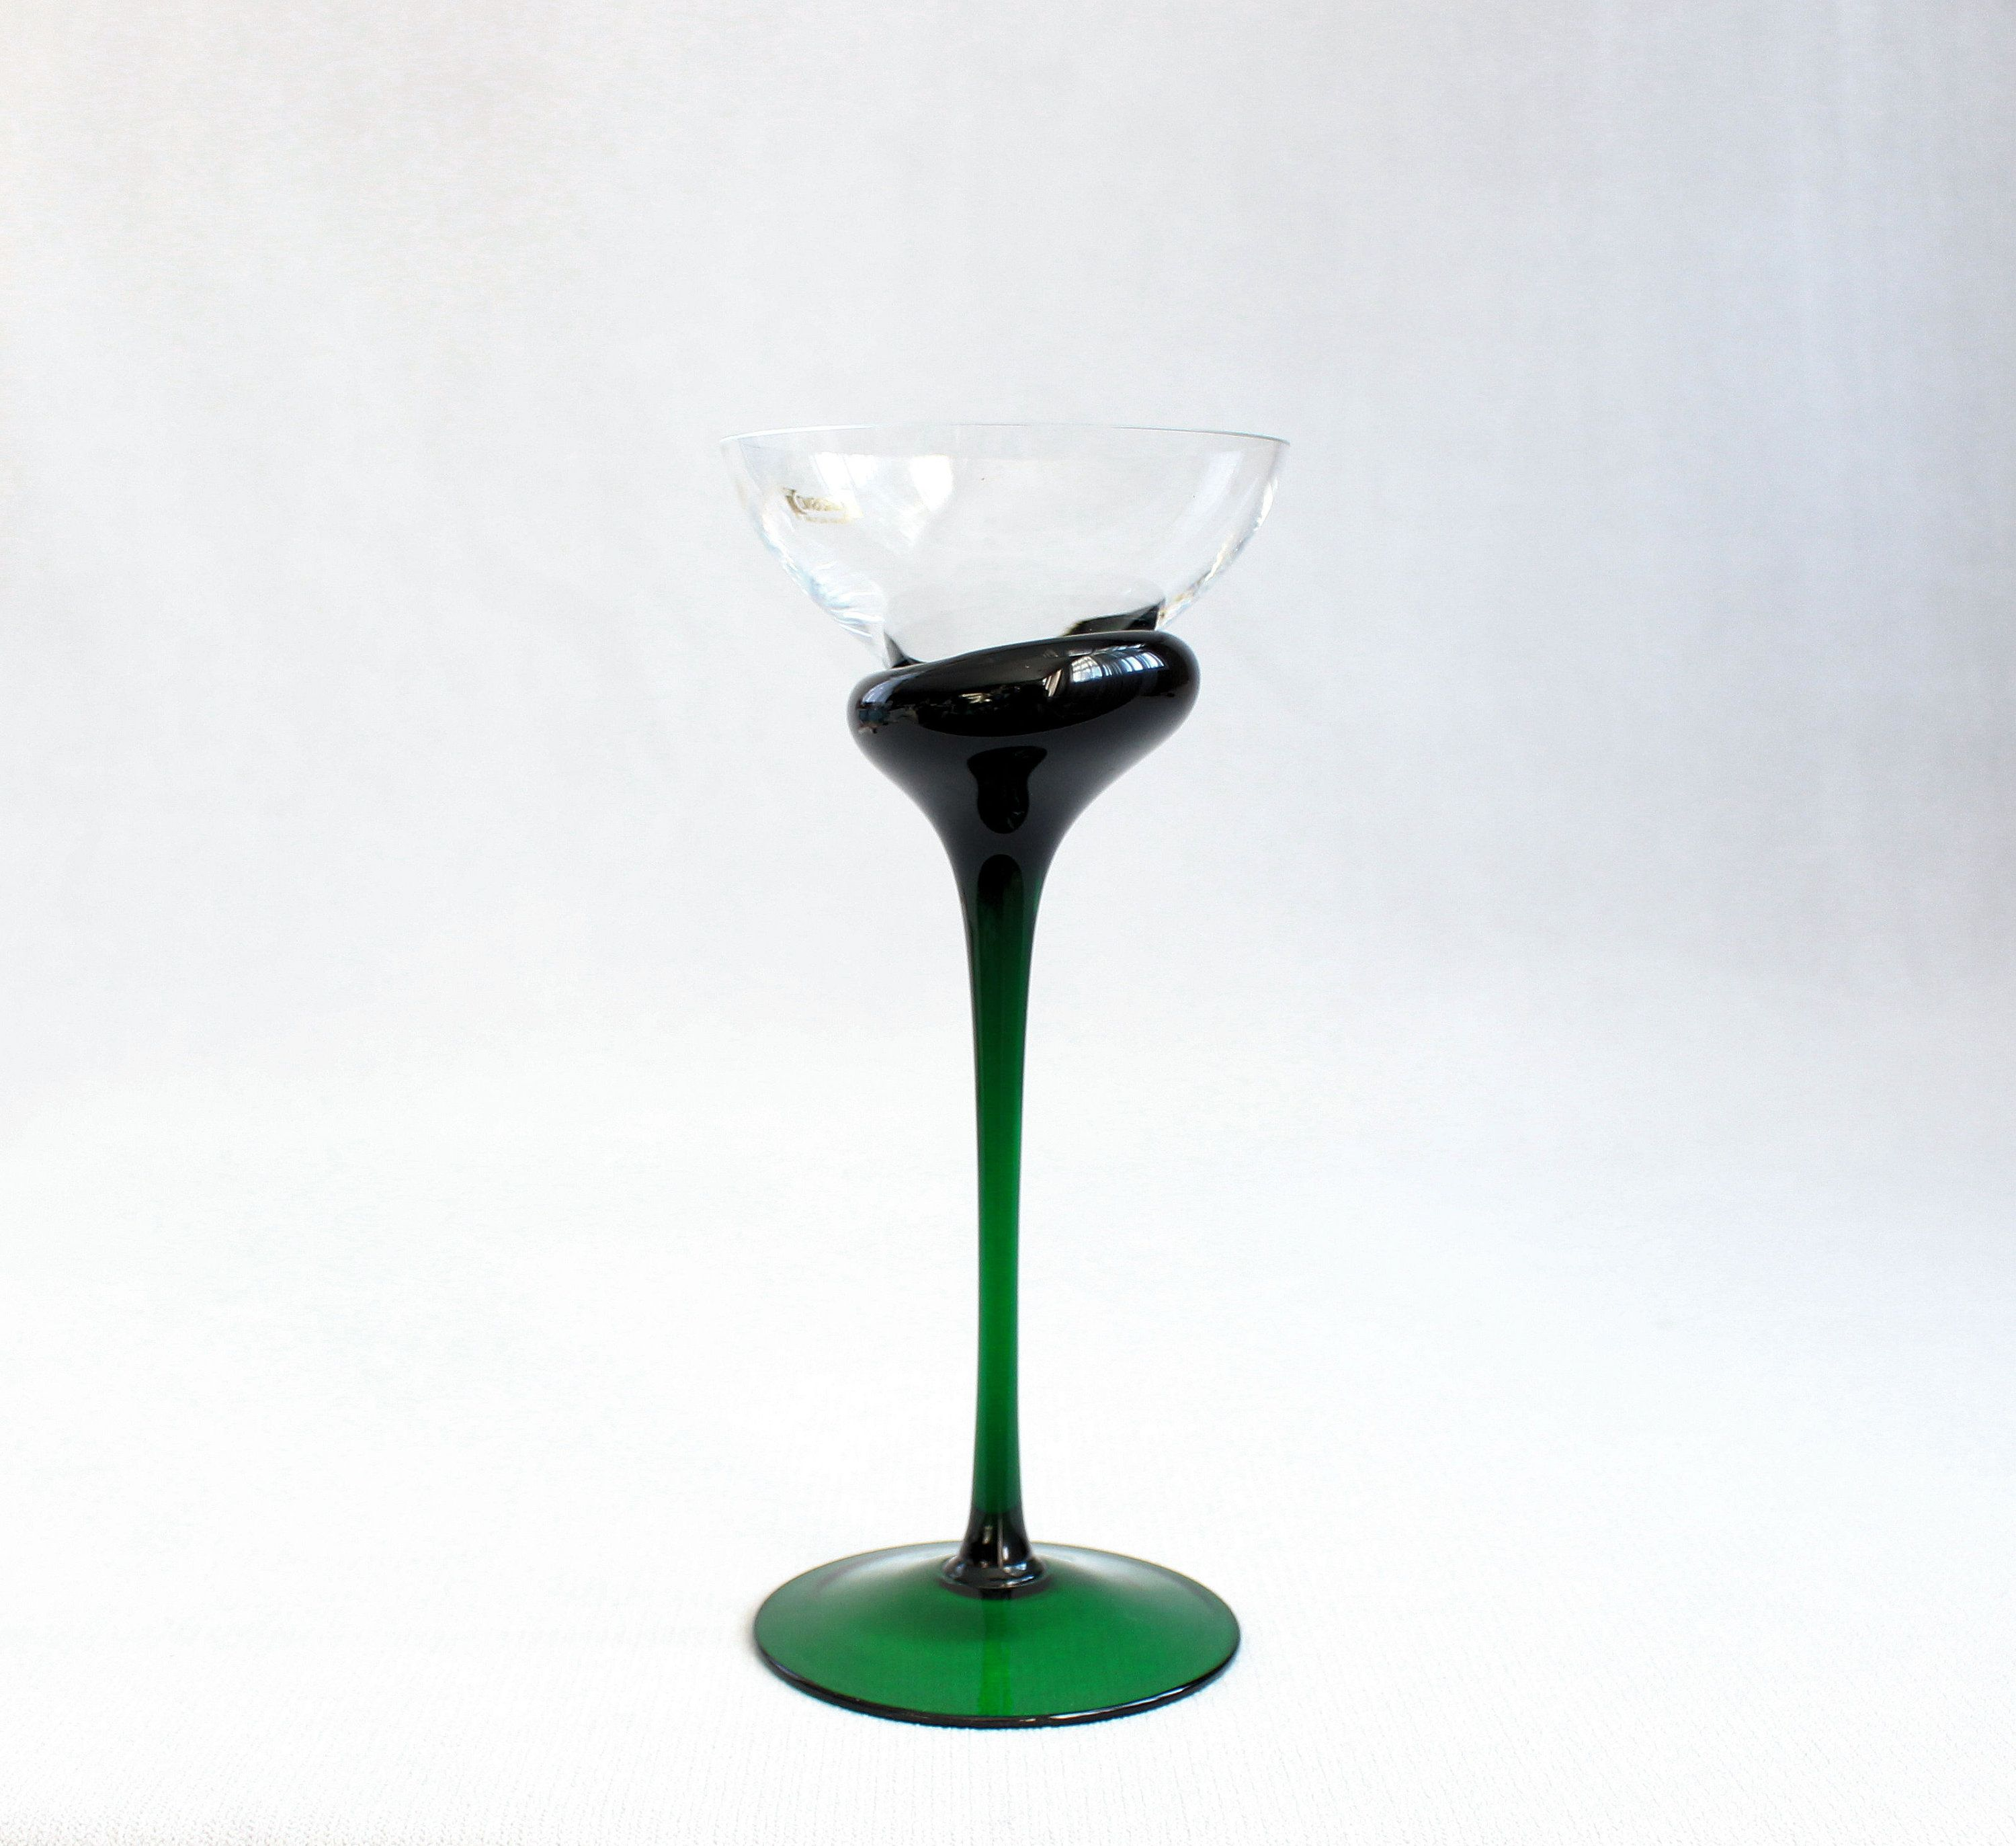 Tall glass candle holder vintage krosno art green and clear candleholder green glass